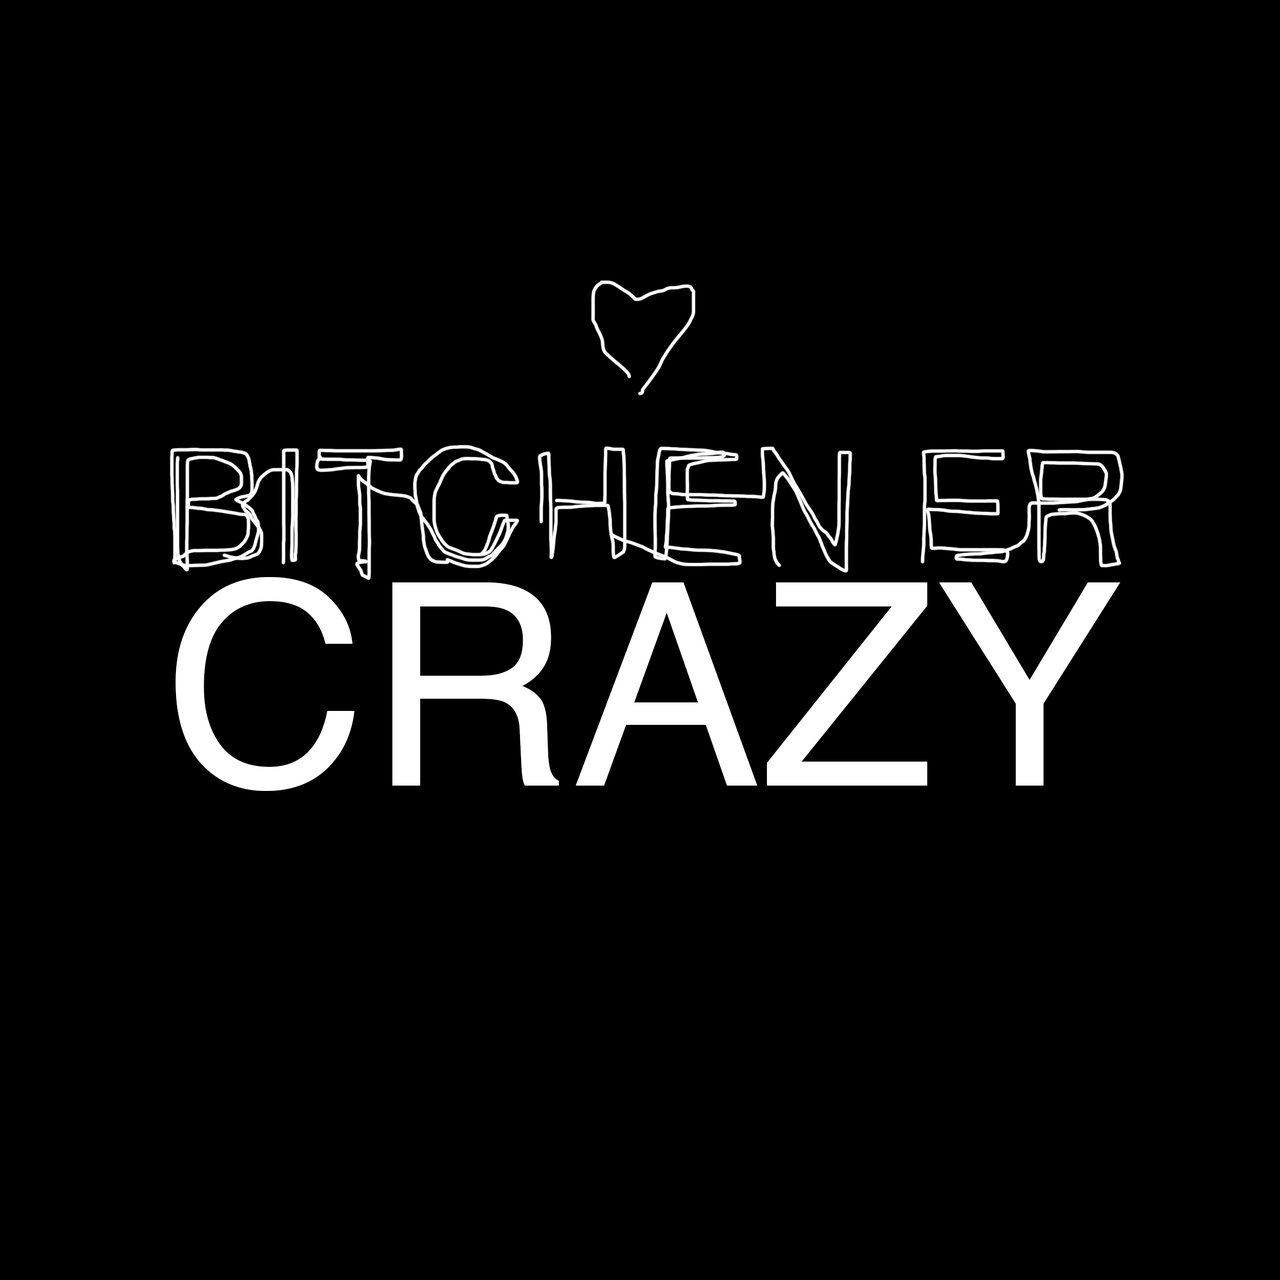 Bitchen er crazy